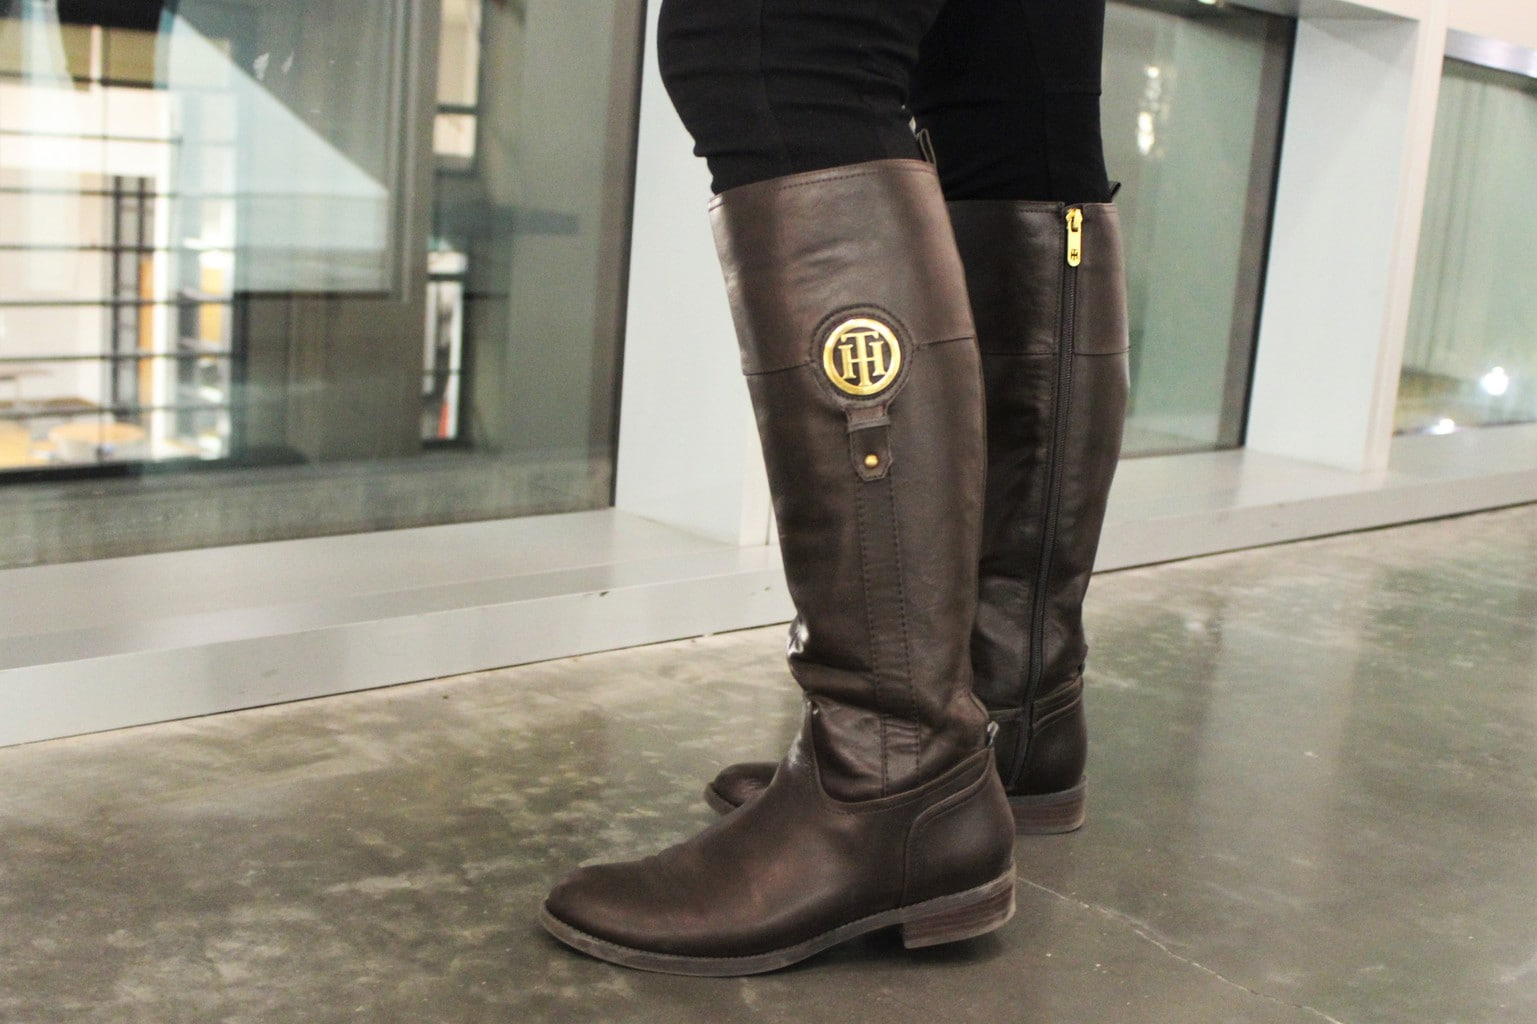 Catherine wears tall flat brown riding boots with gold accents.